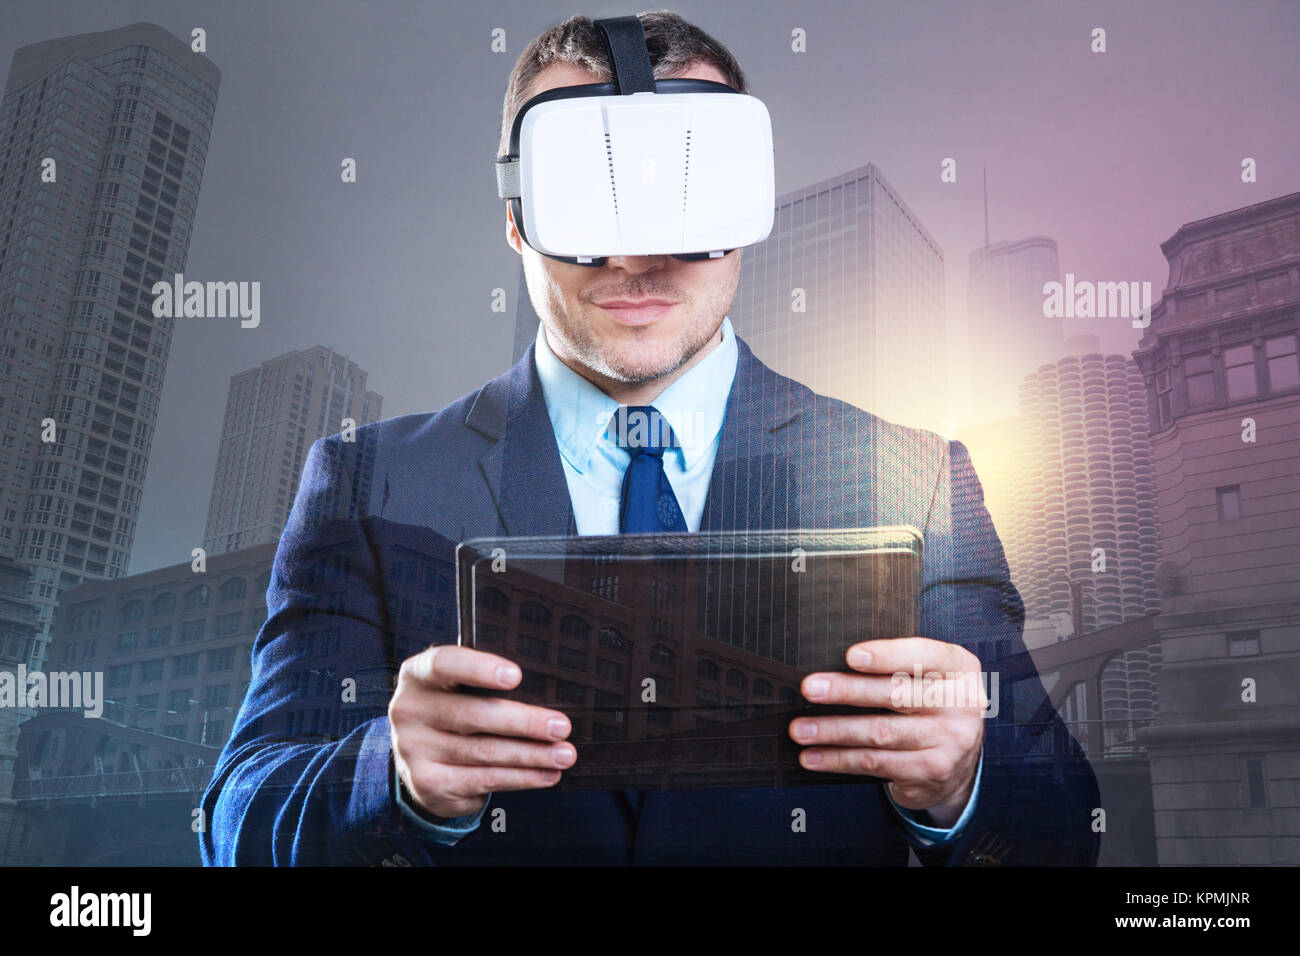 Successful young man working with VR headset and tablet computer - Stock Image